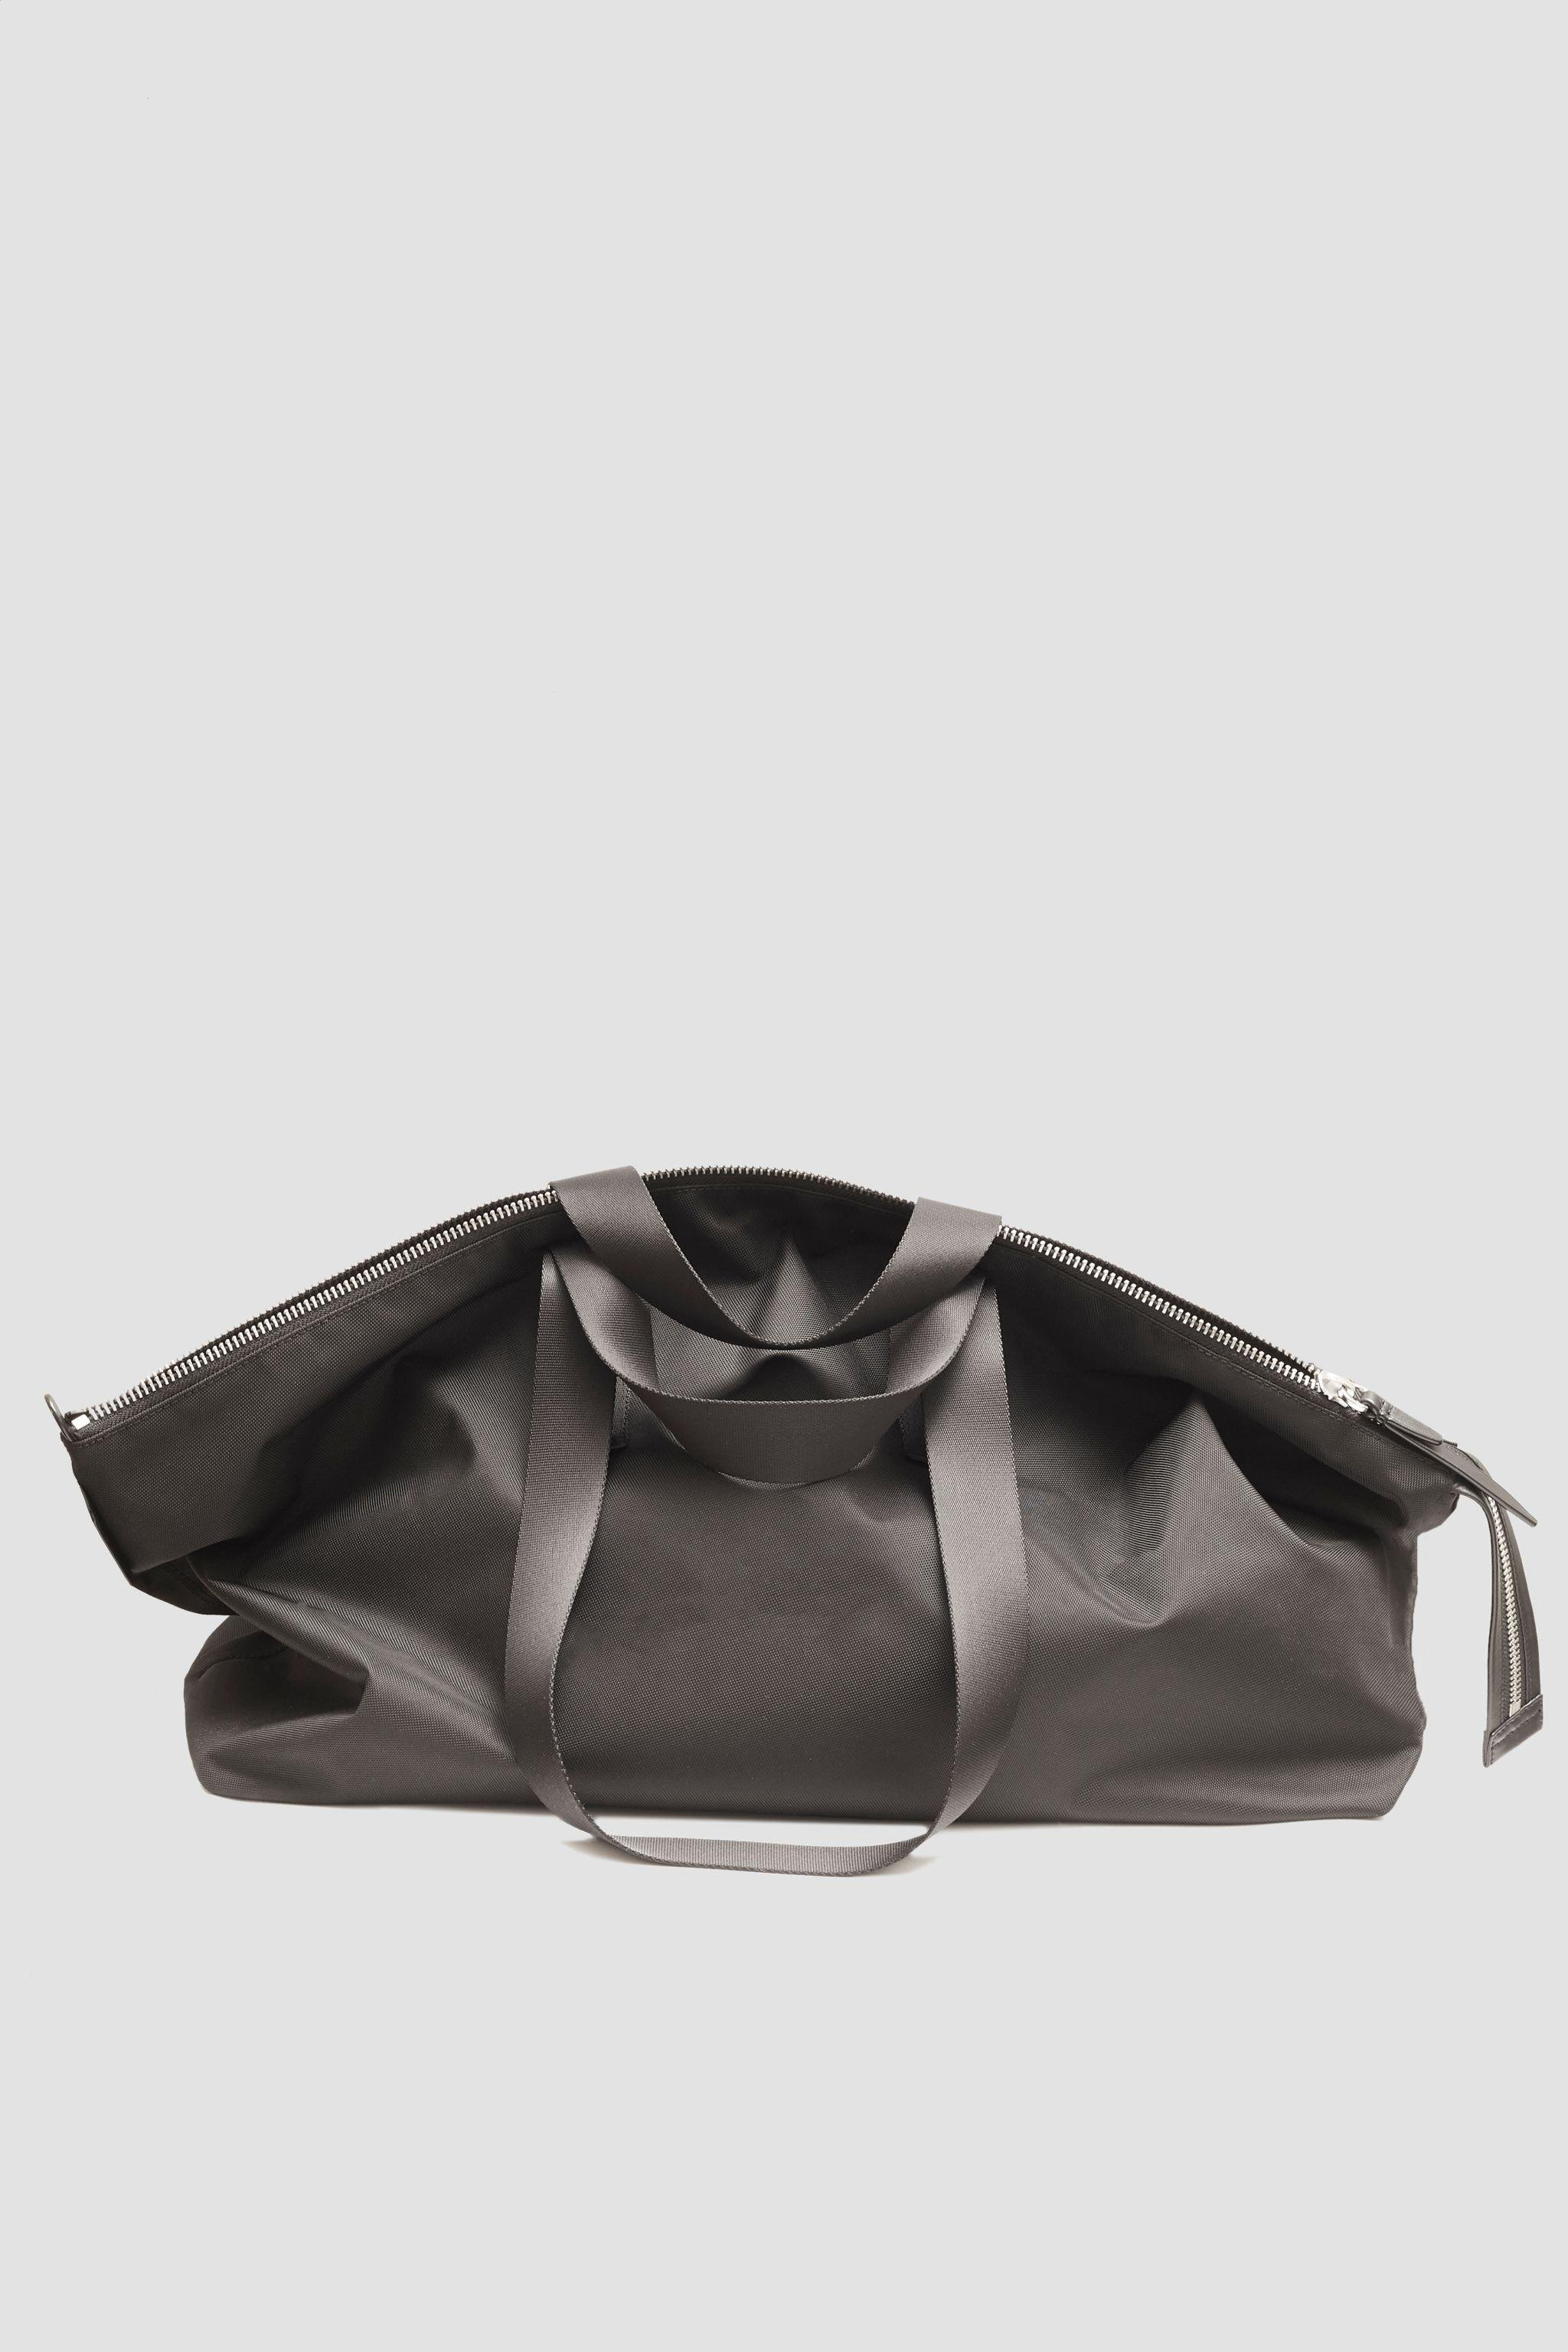 The Deconstructed Duffle Bag 1